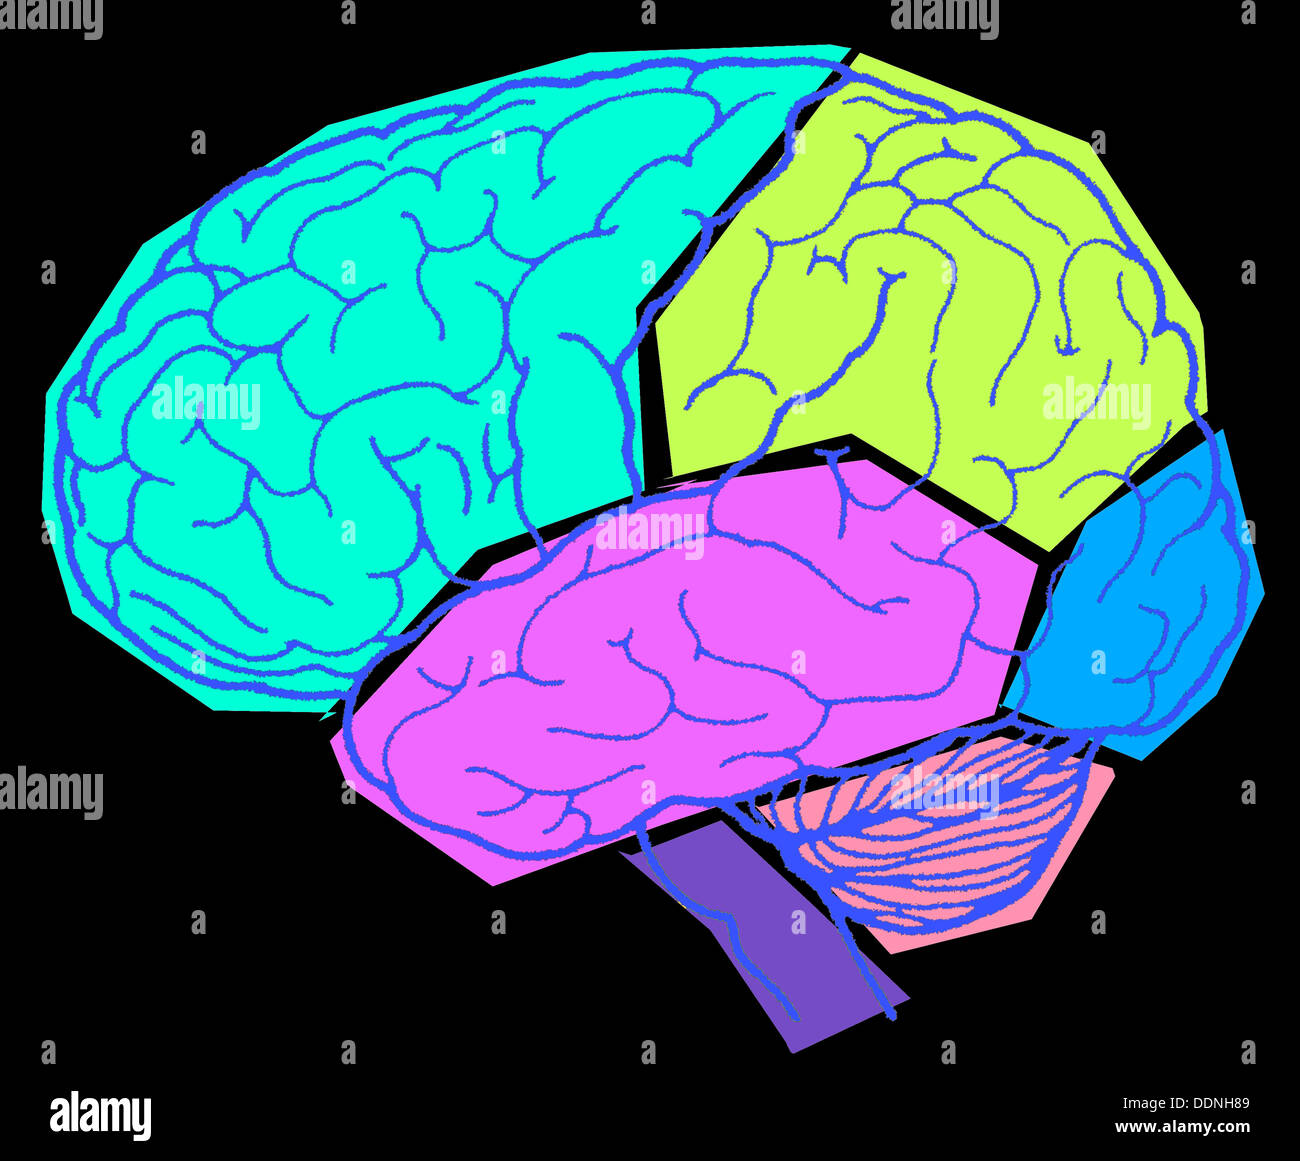 Parts of the human brain Stock Photo: 60096185 - Alamy